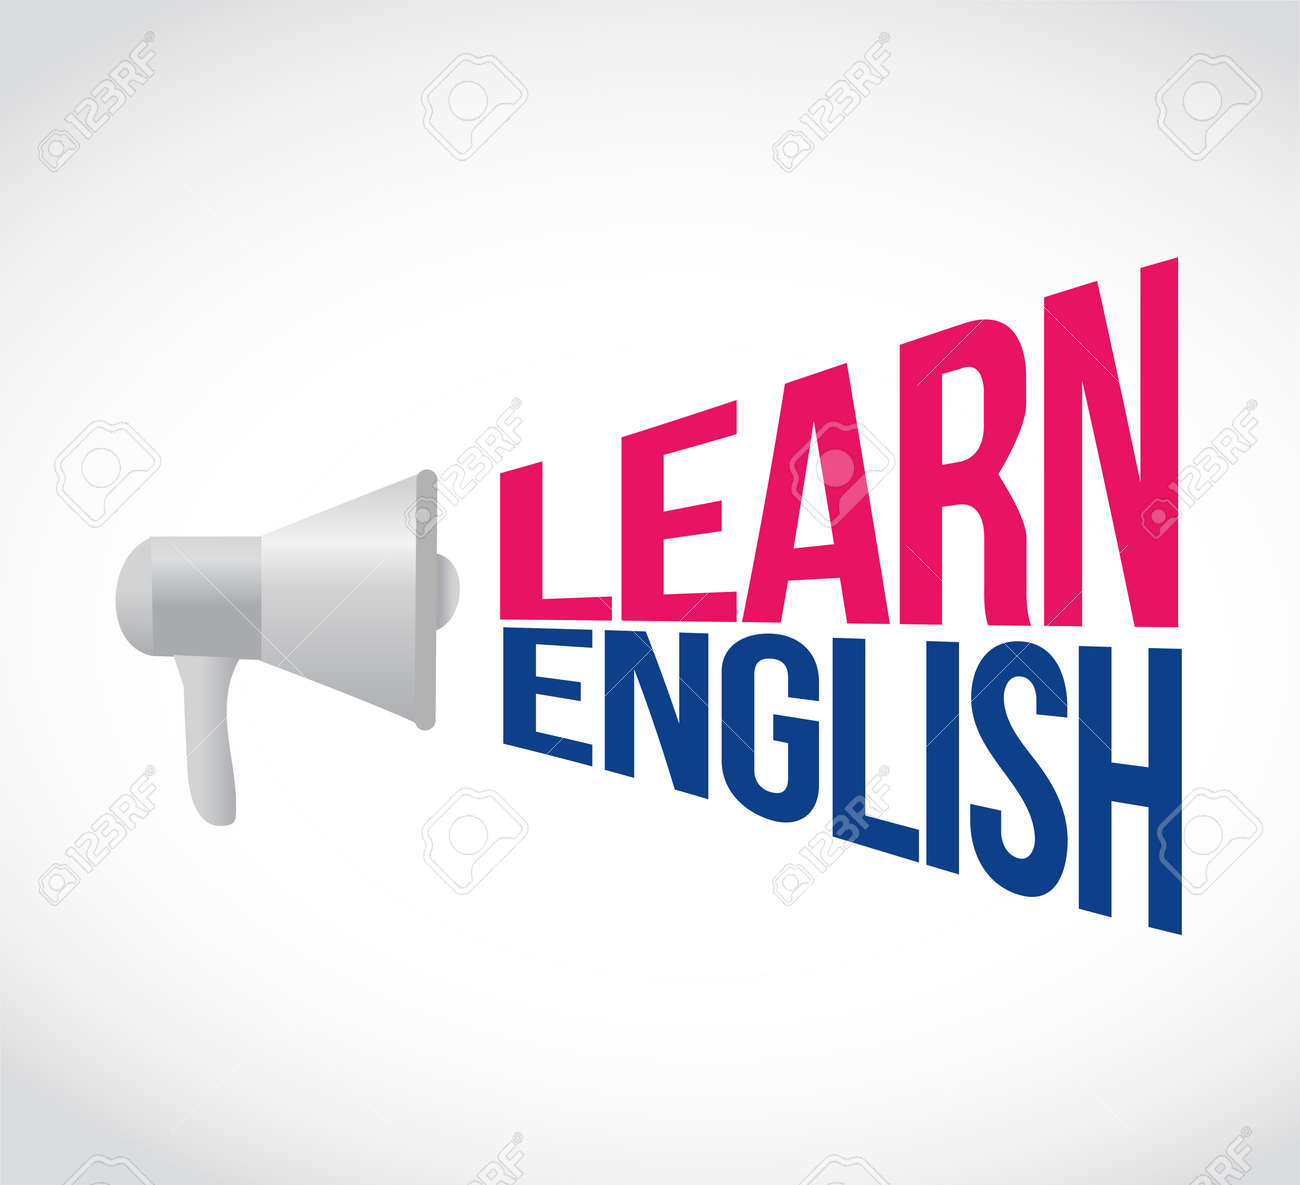 Learn English Loudspeaker Message Sign Illustration Design Graphic Royalty Free Cliparts Vectors And Stock Illustration Image 97729473